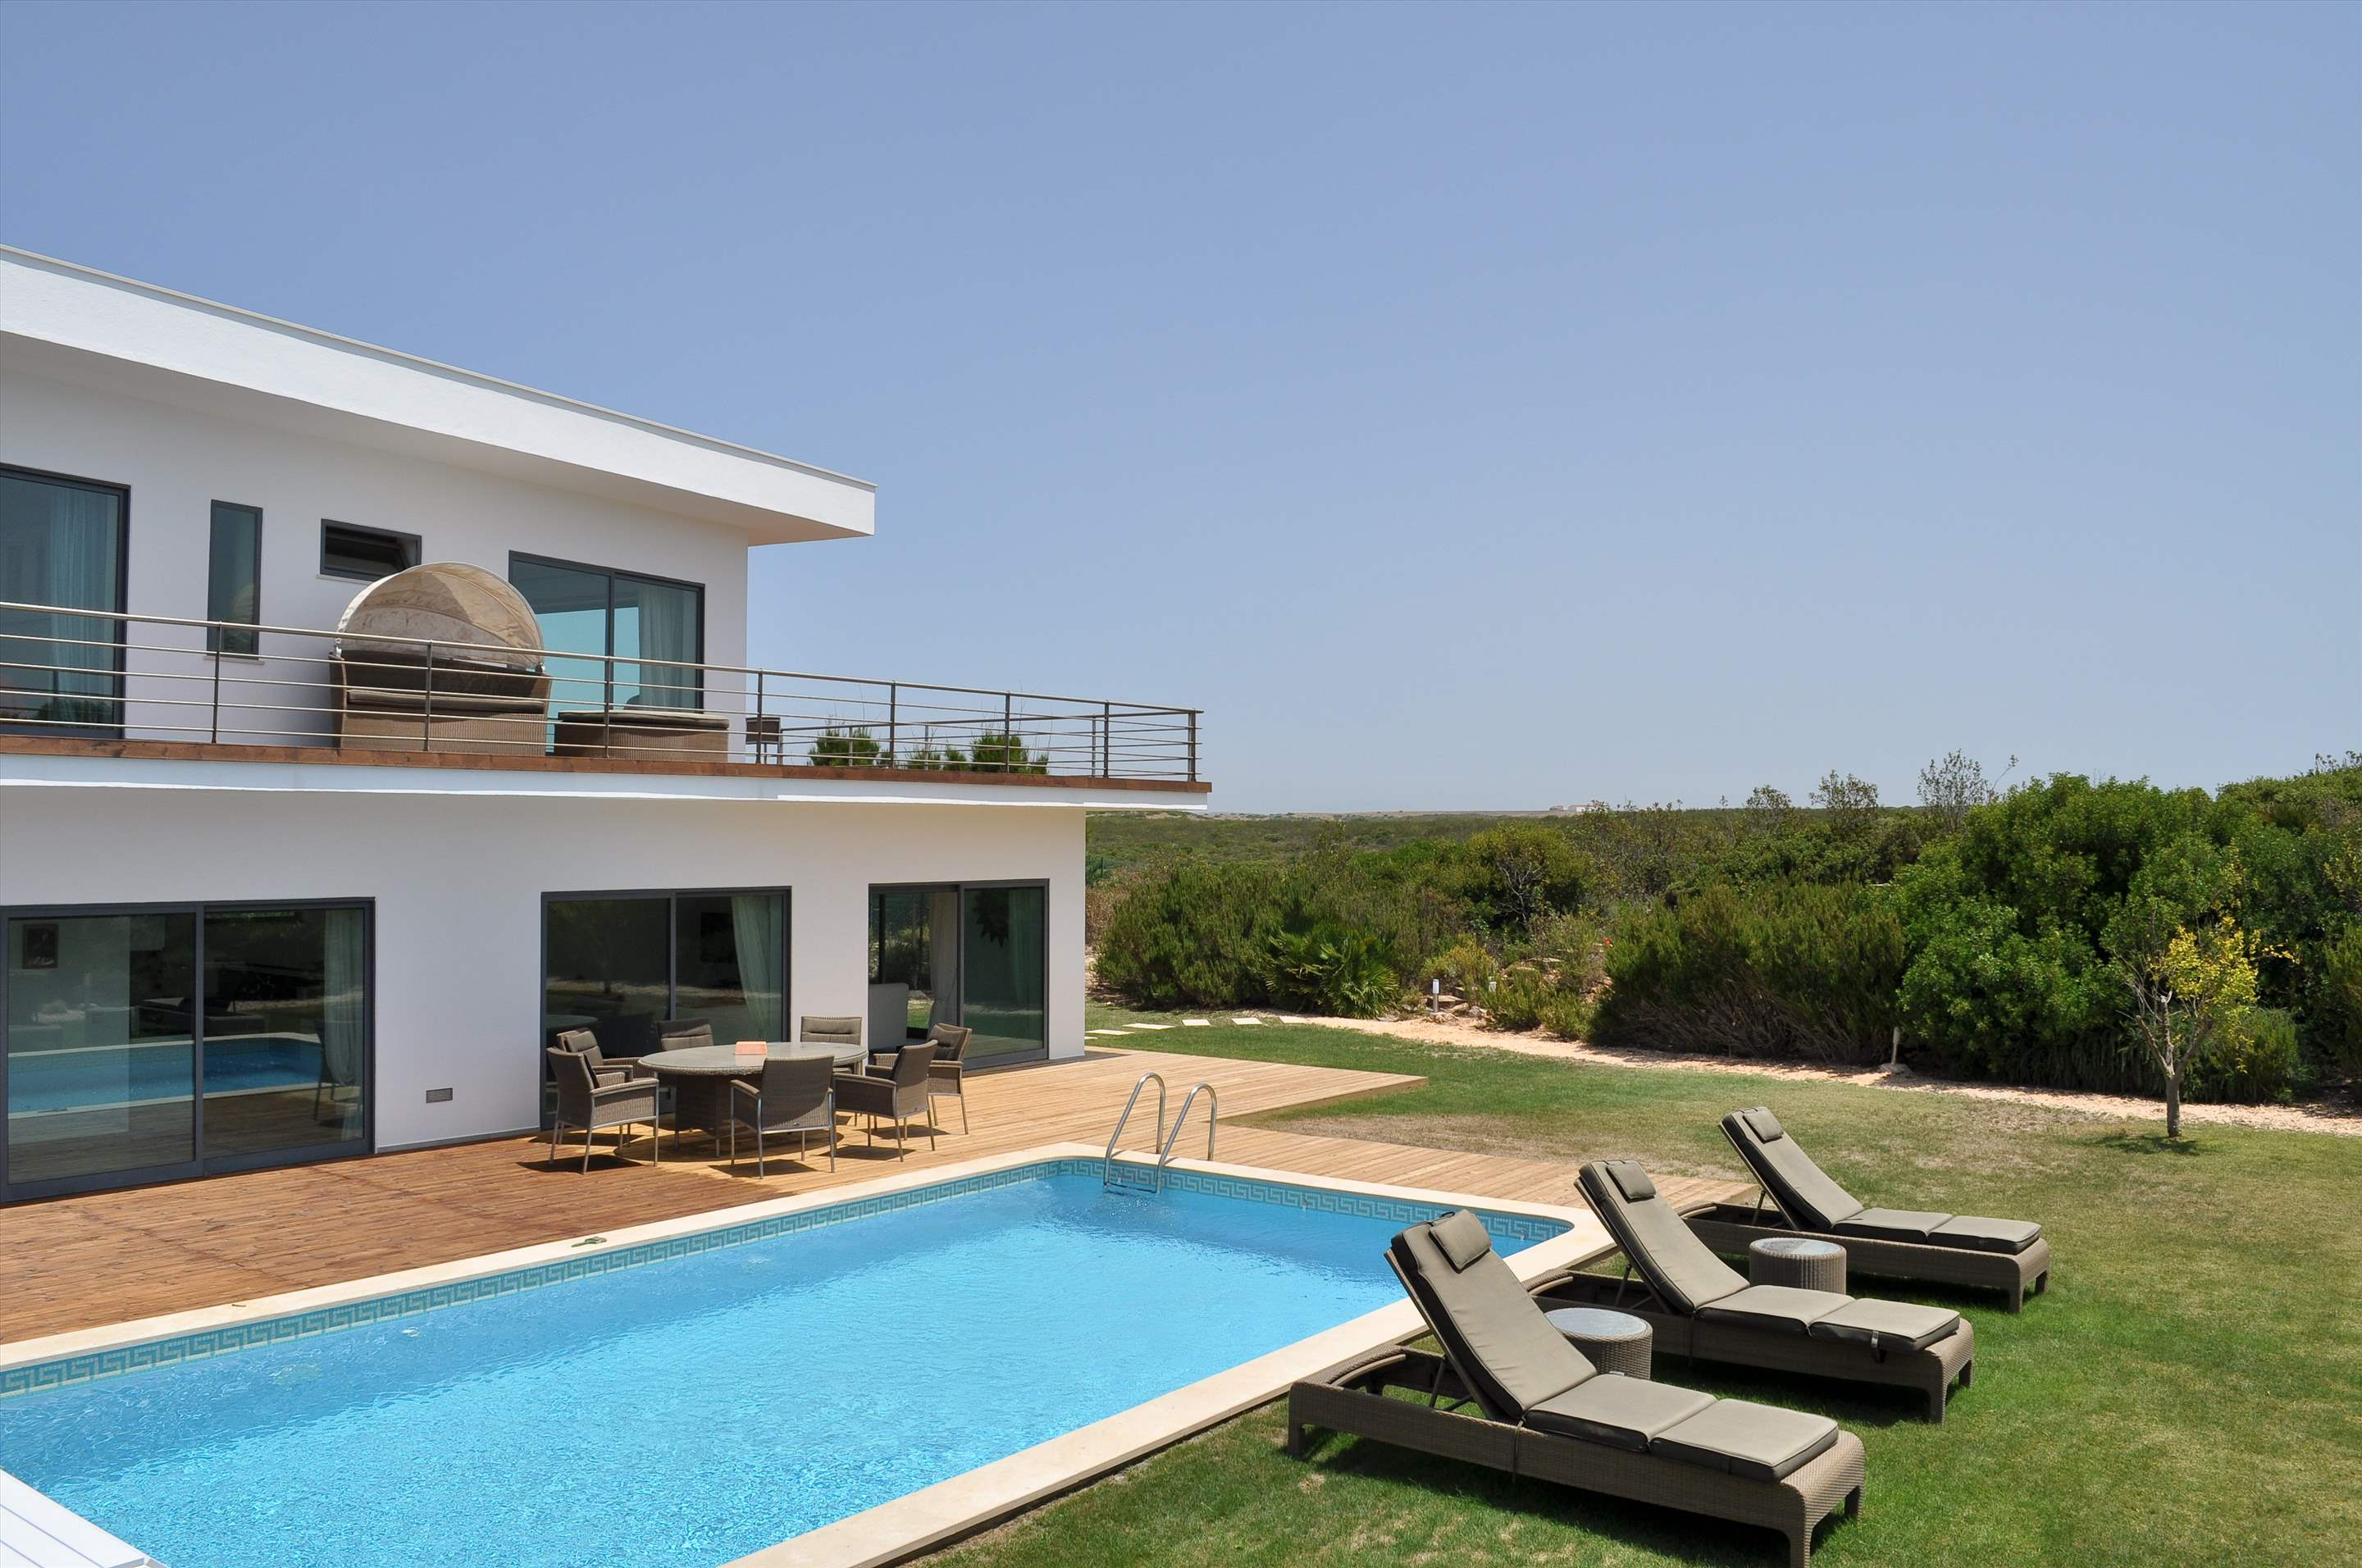 Martinhal Luxury Villa No.77, 5 bedroom villa in Martinhal Sagres, Algarve Photo #2